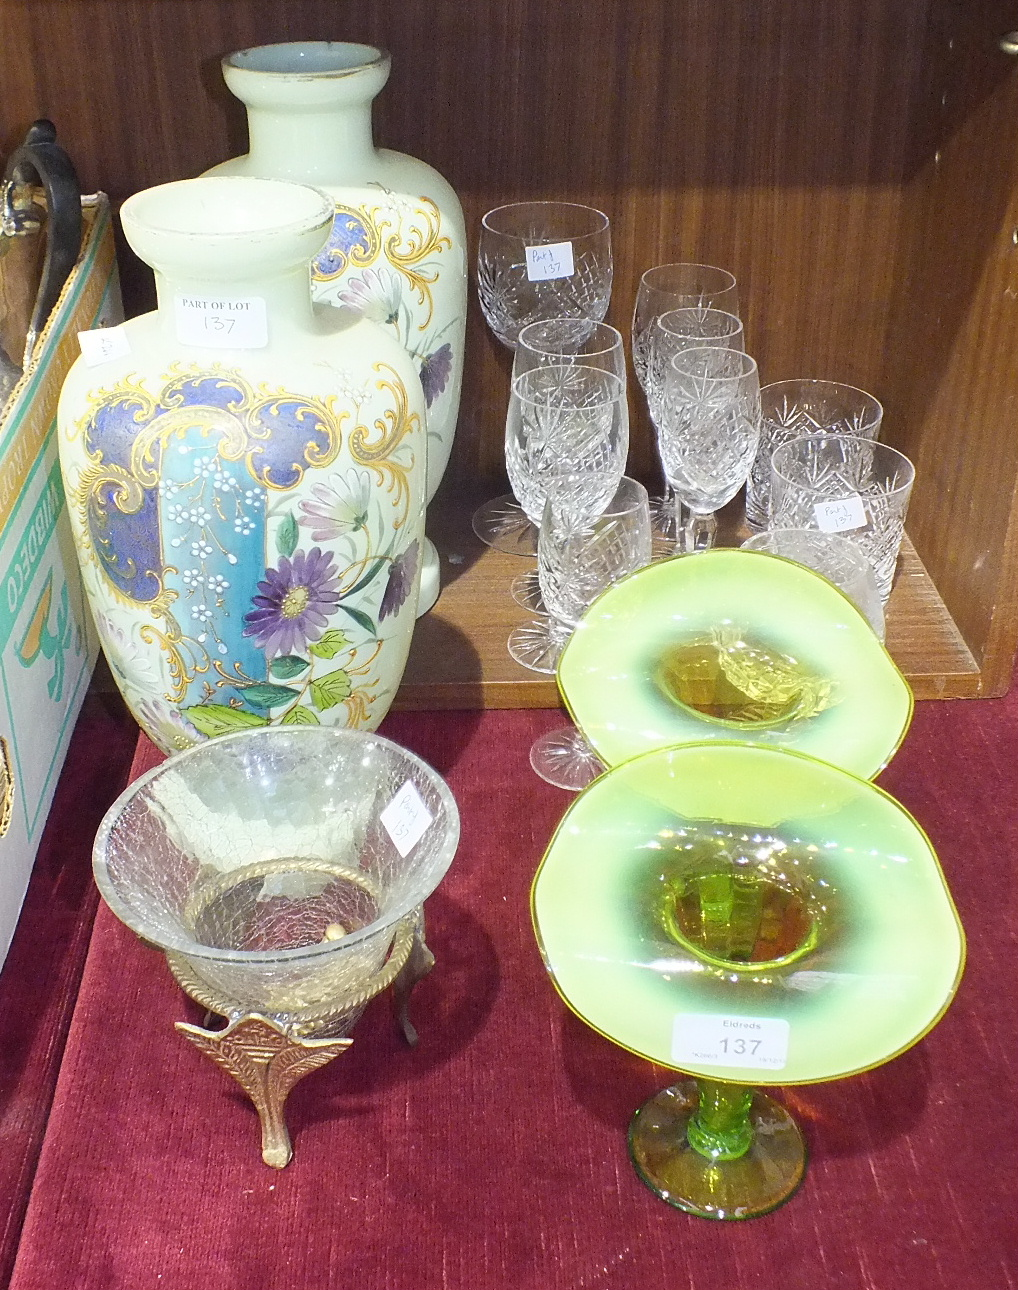 Lot 137 - A pair of Late-Victorian green glass baluster shape vases with coloured enamel floral decoration,